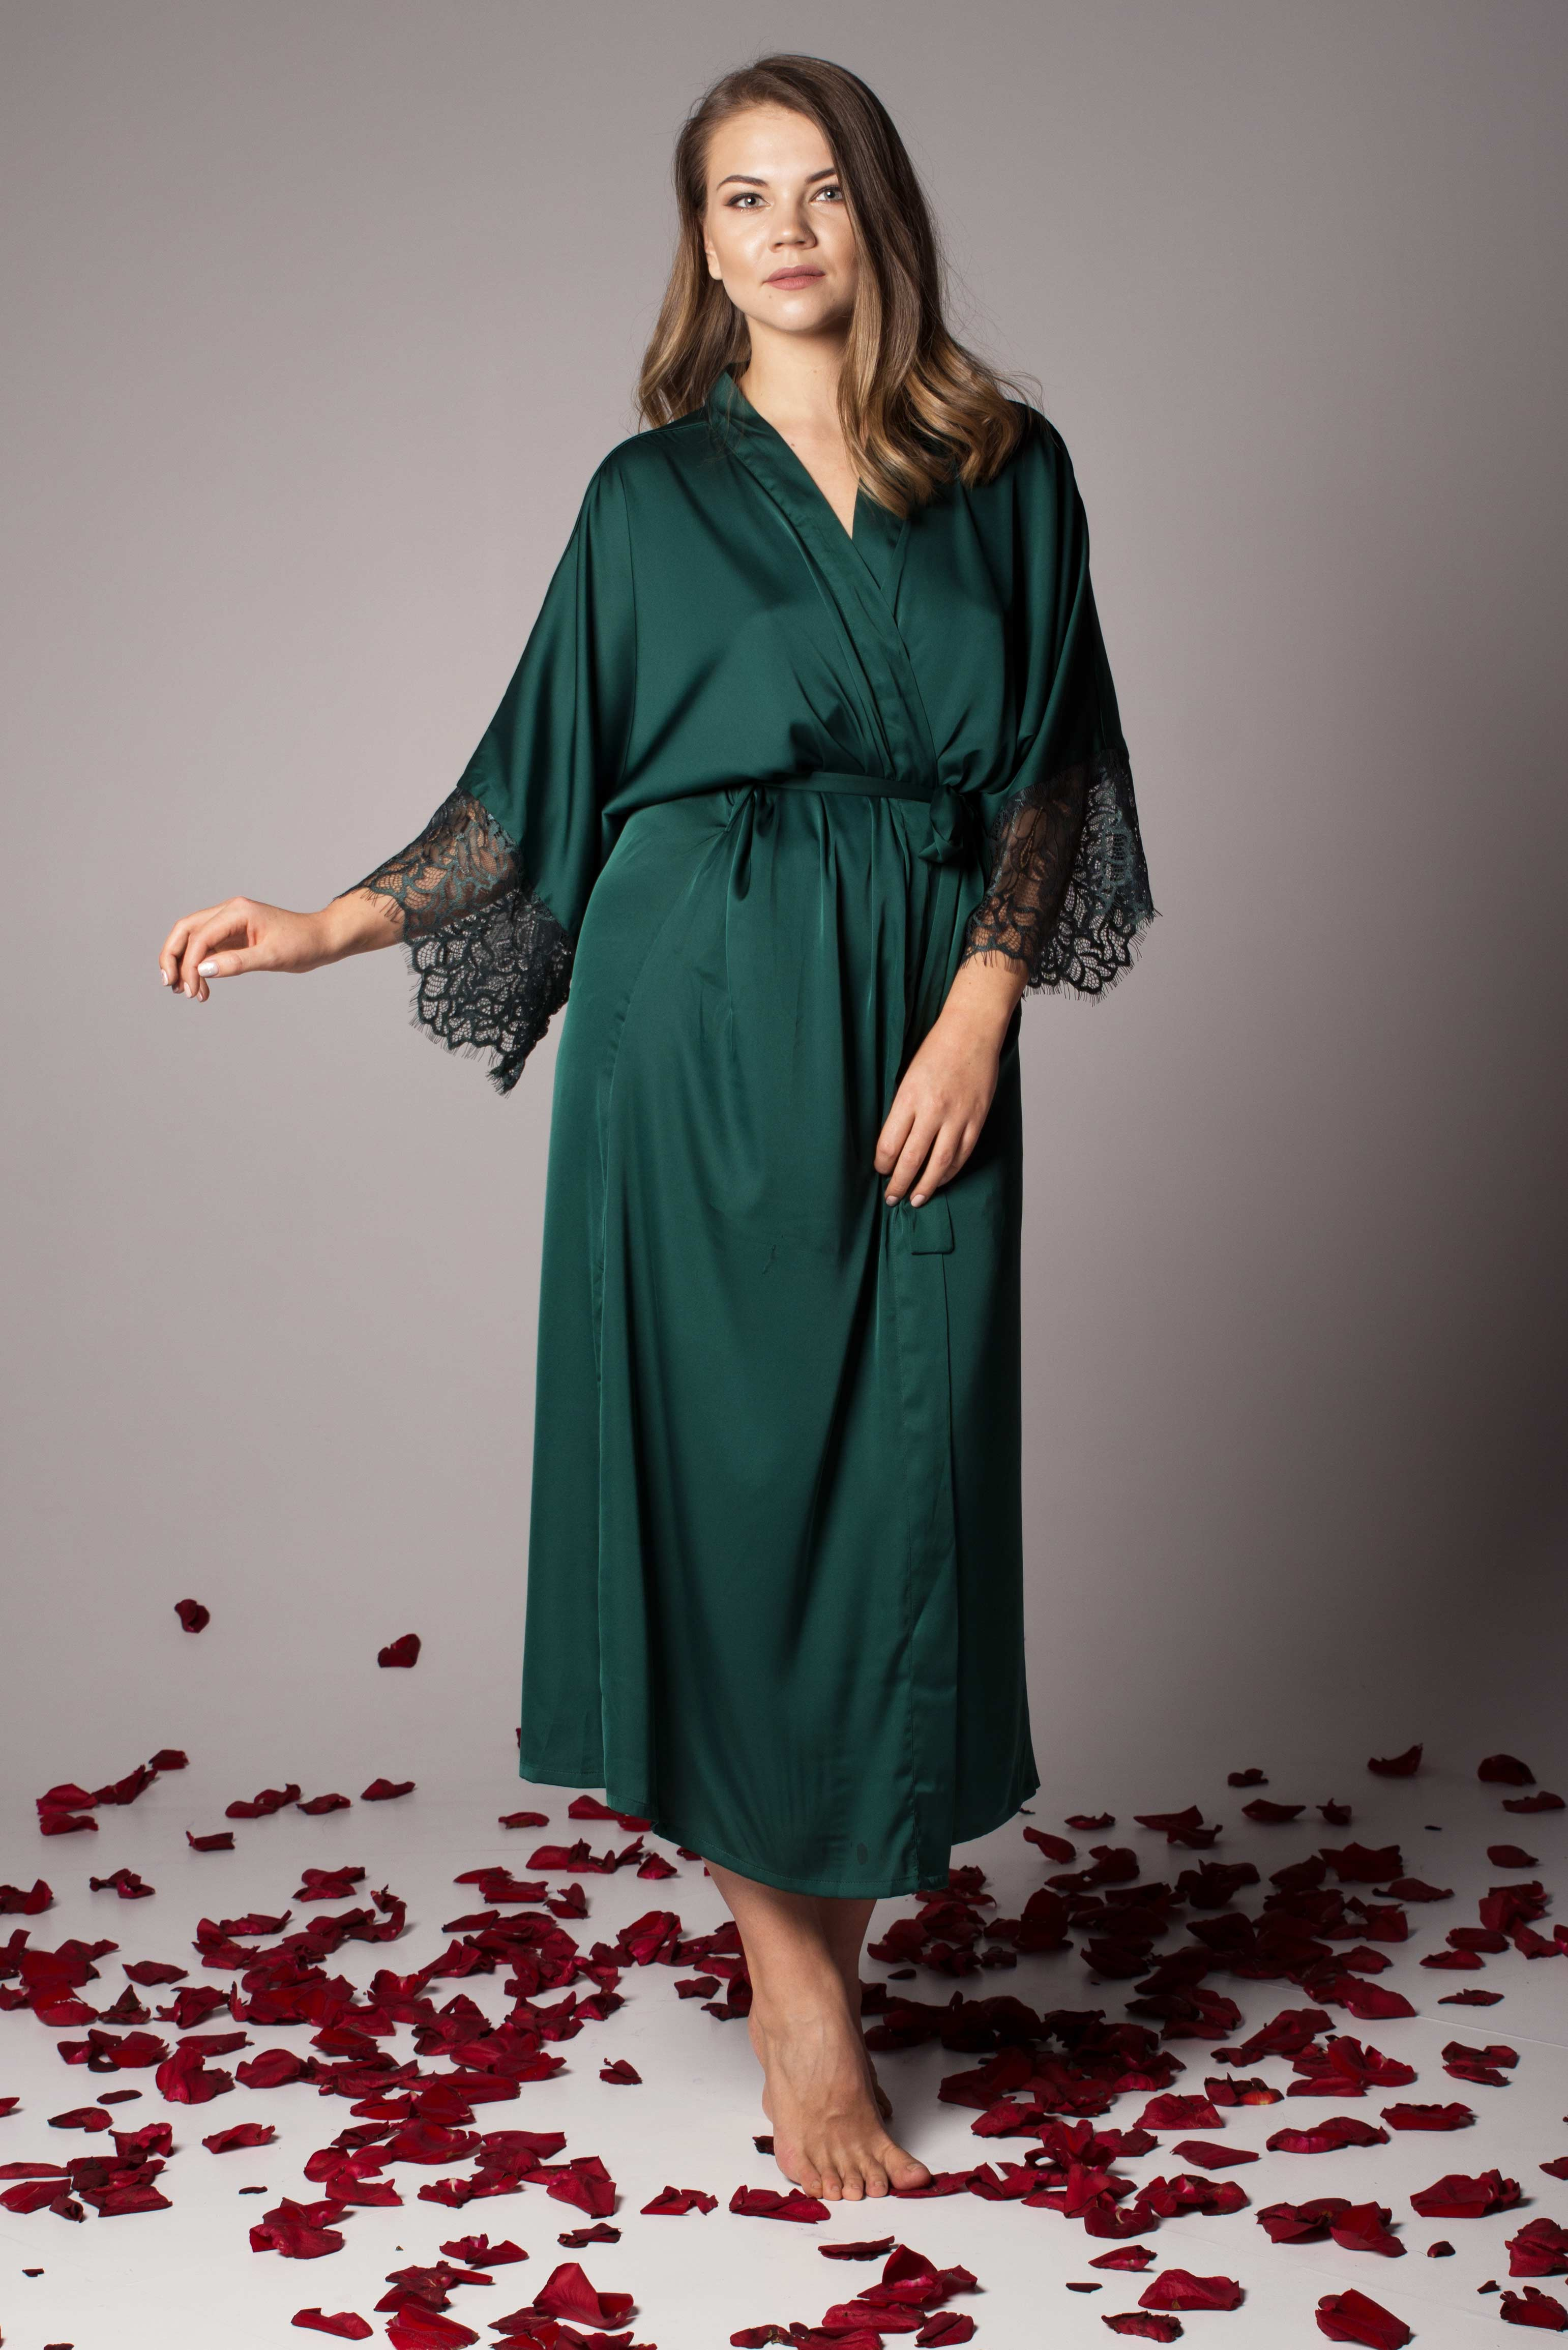 Buy Satin Women\'s Dressing Gown - Long Robe in Green, Navy | UK